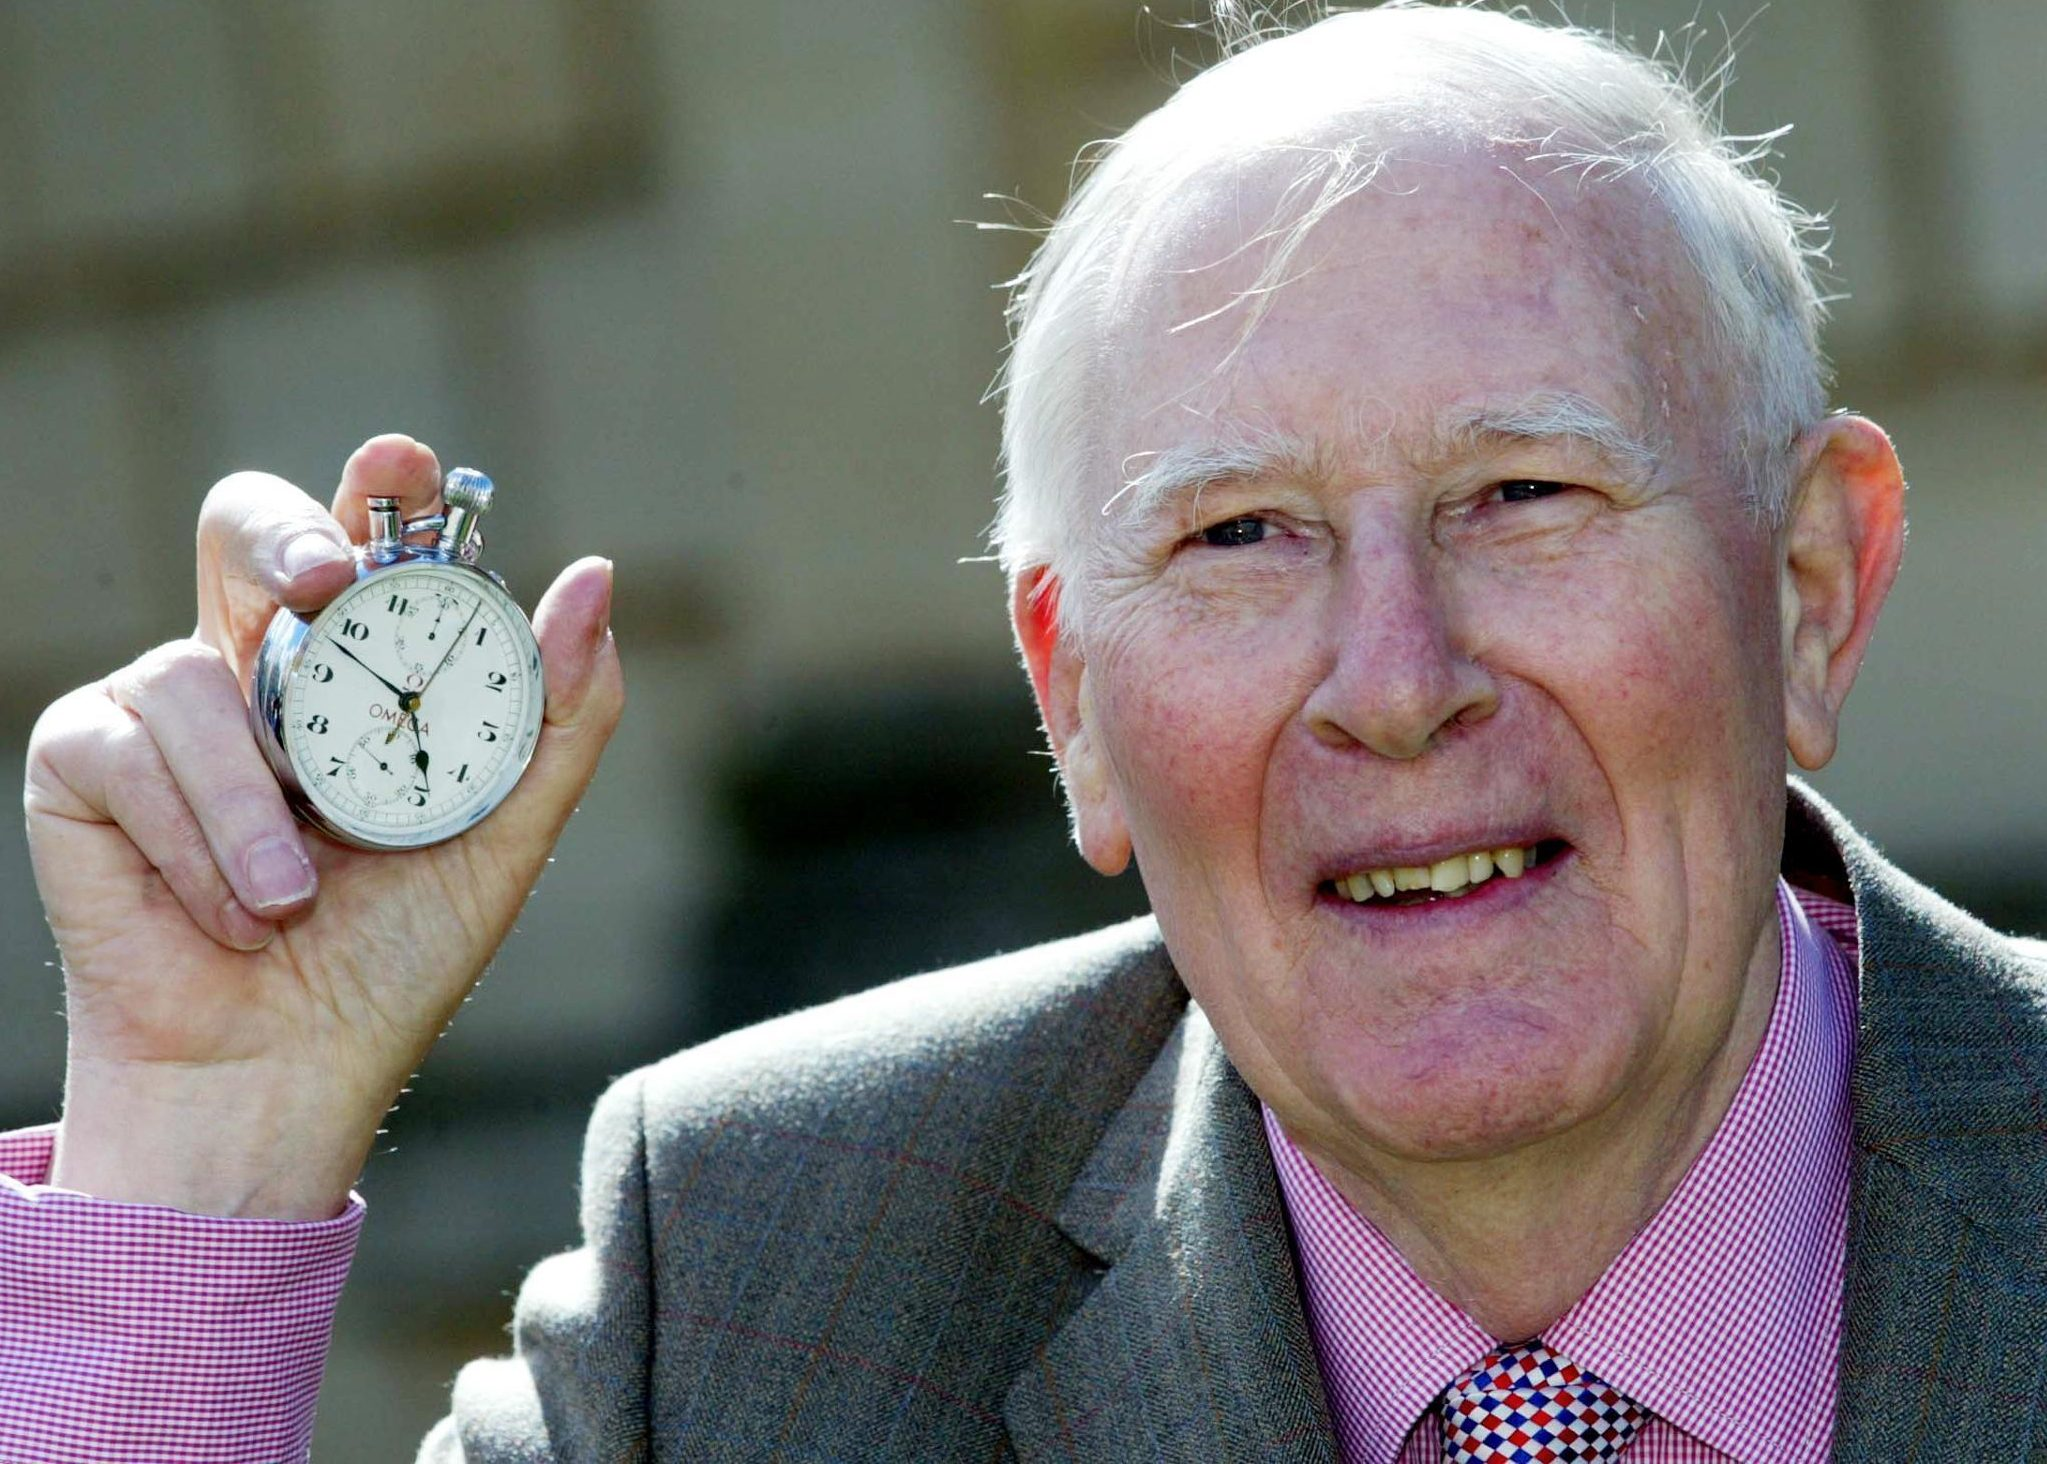 Sir Roger Bannister with the stopwatch that recorded his record feat in 1954